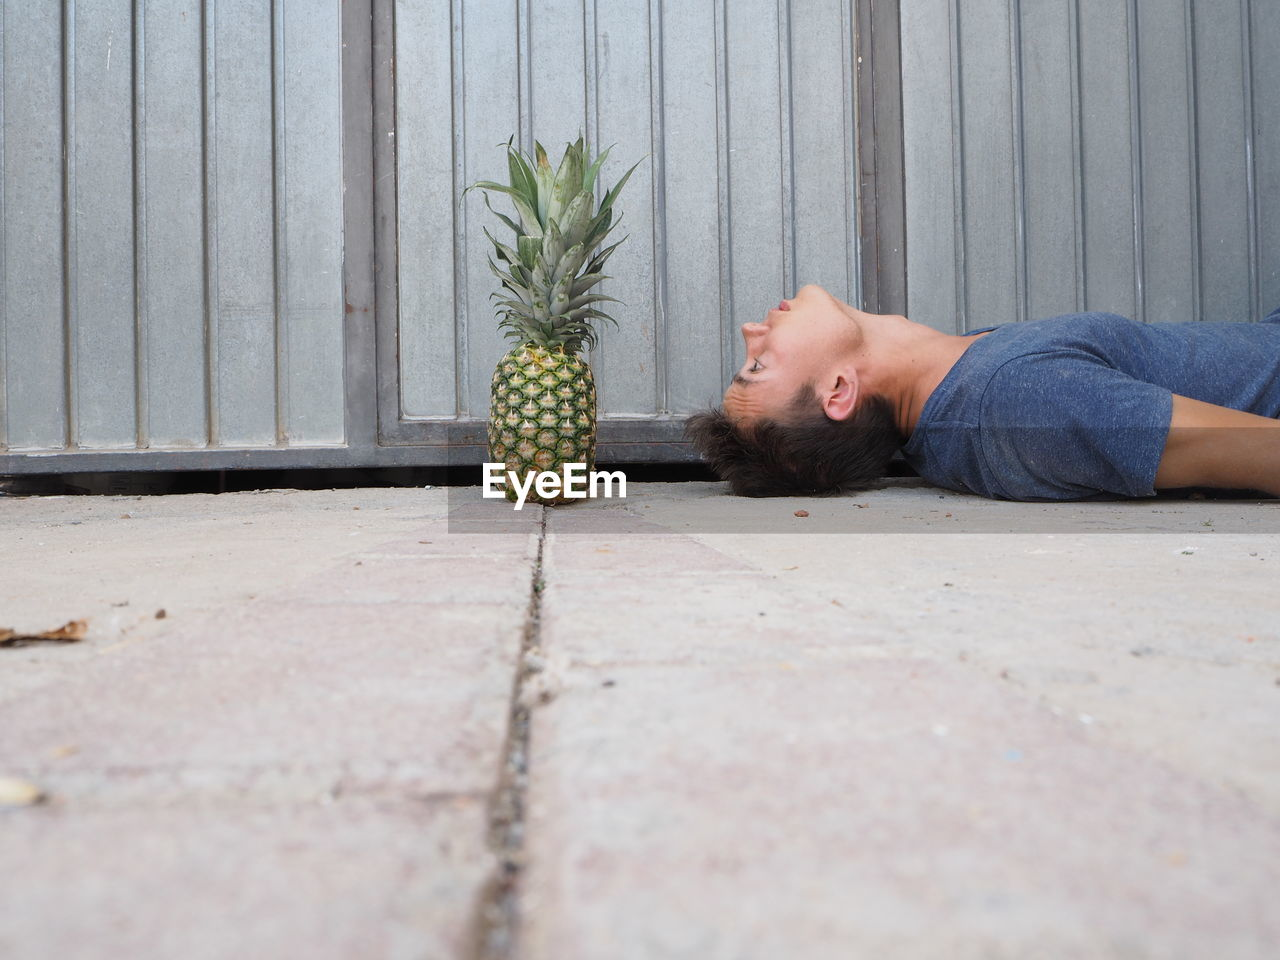 Surface Level Of Young Man Looking At Pineapple While Lying On Footpath